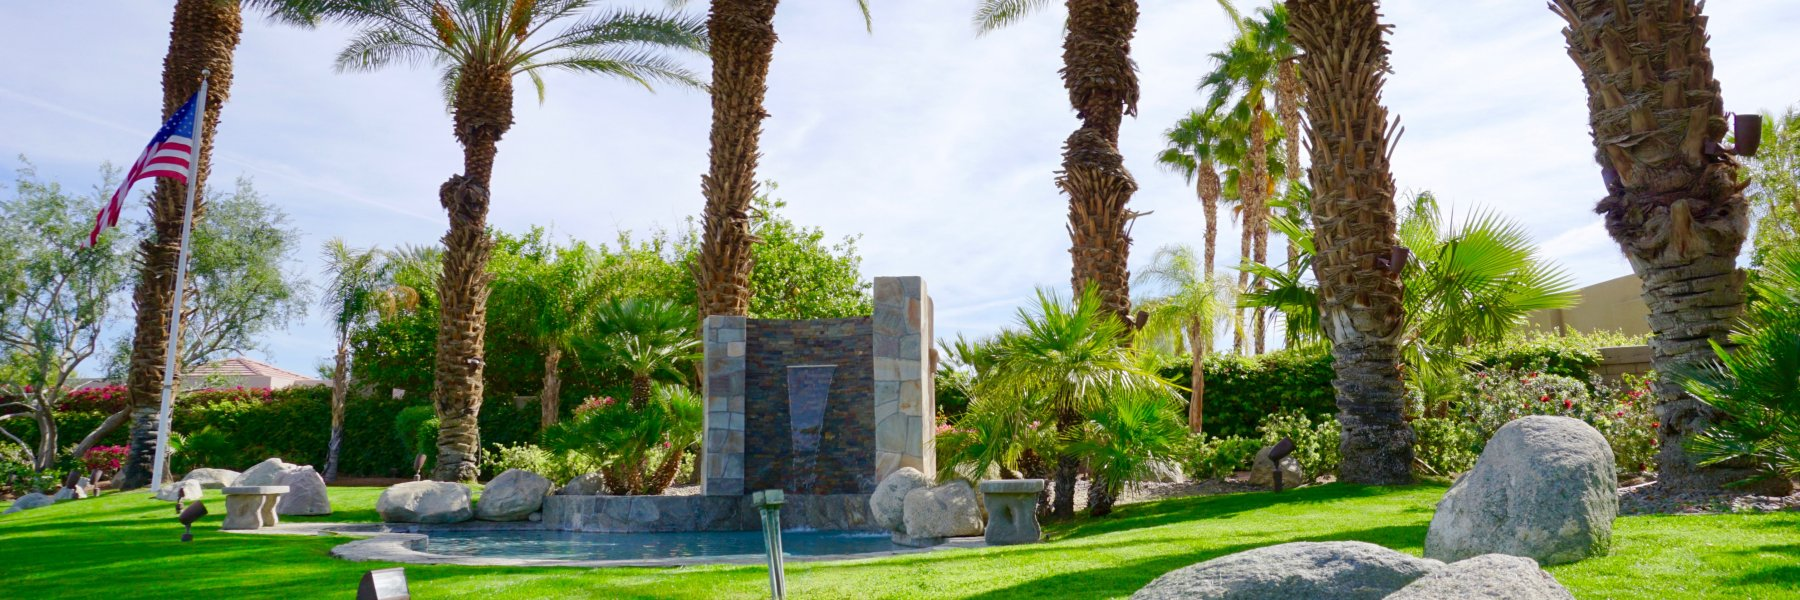 Painted Cove is a community of homes in La Quinta California